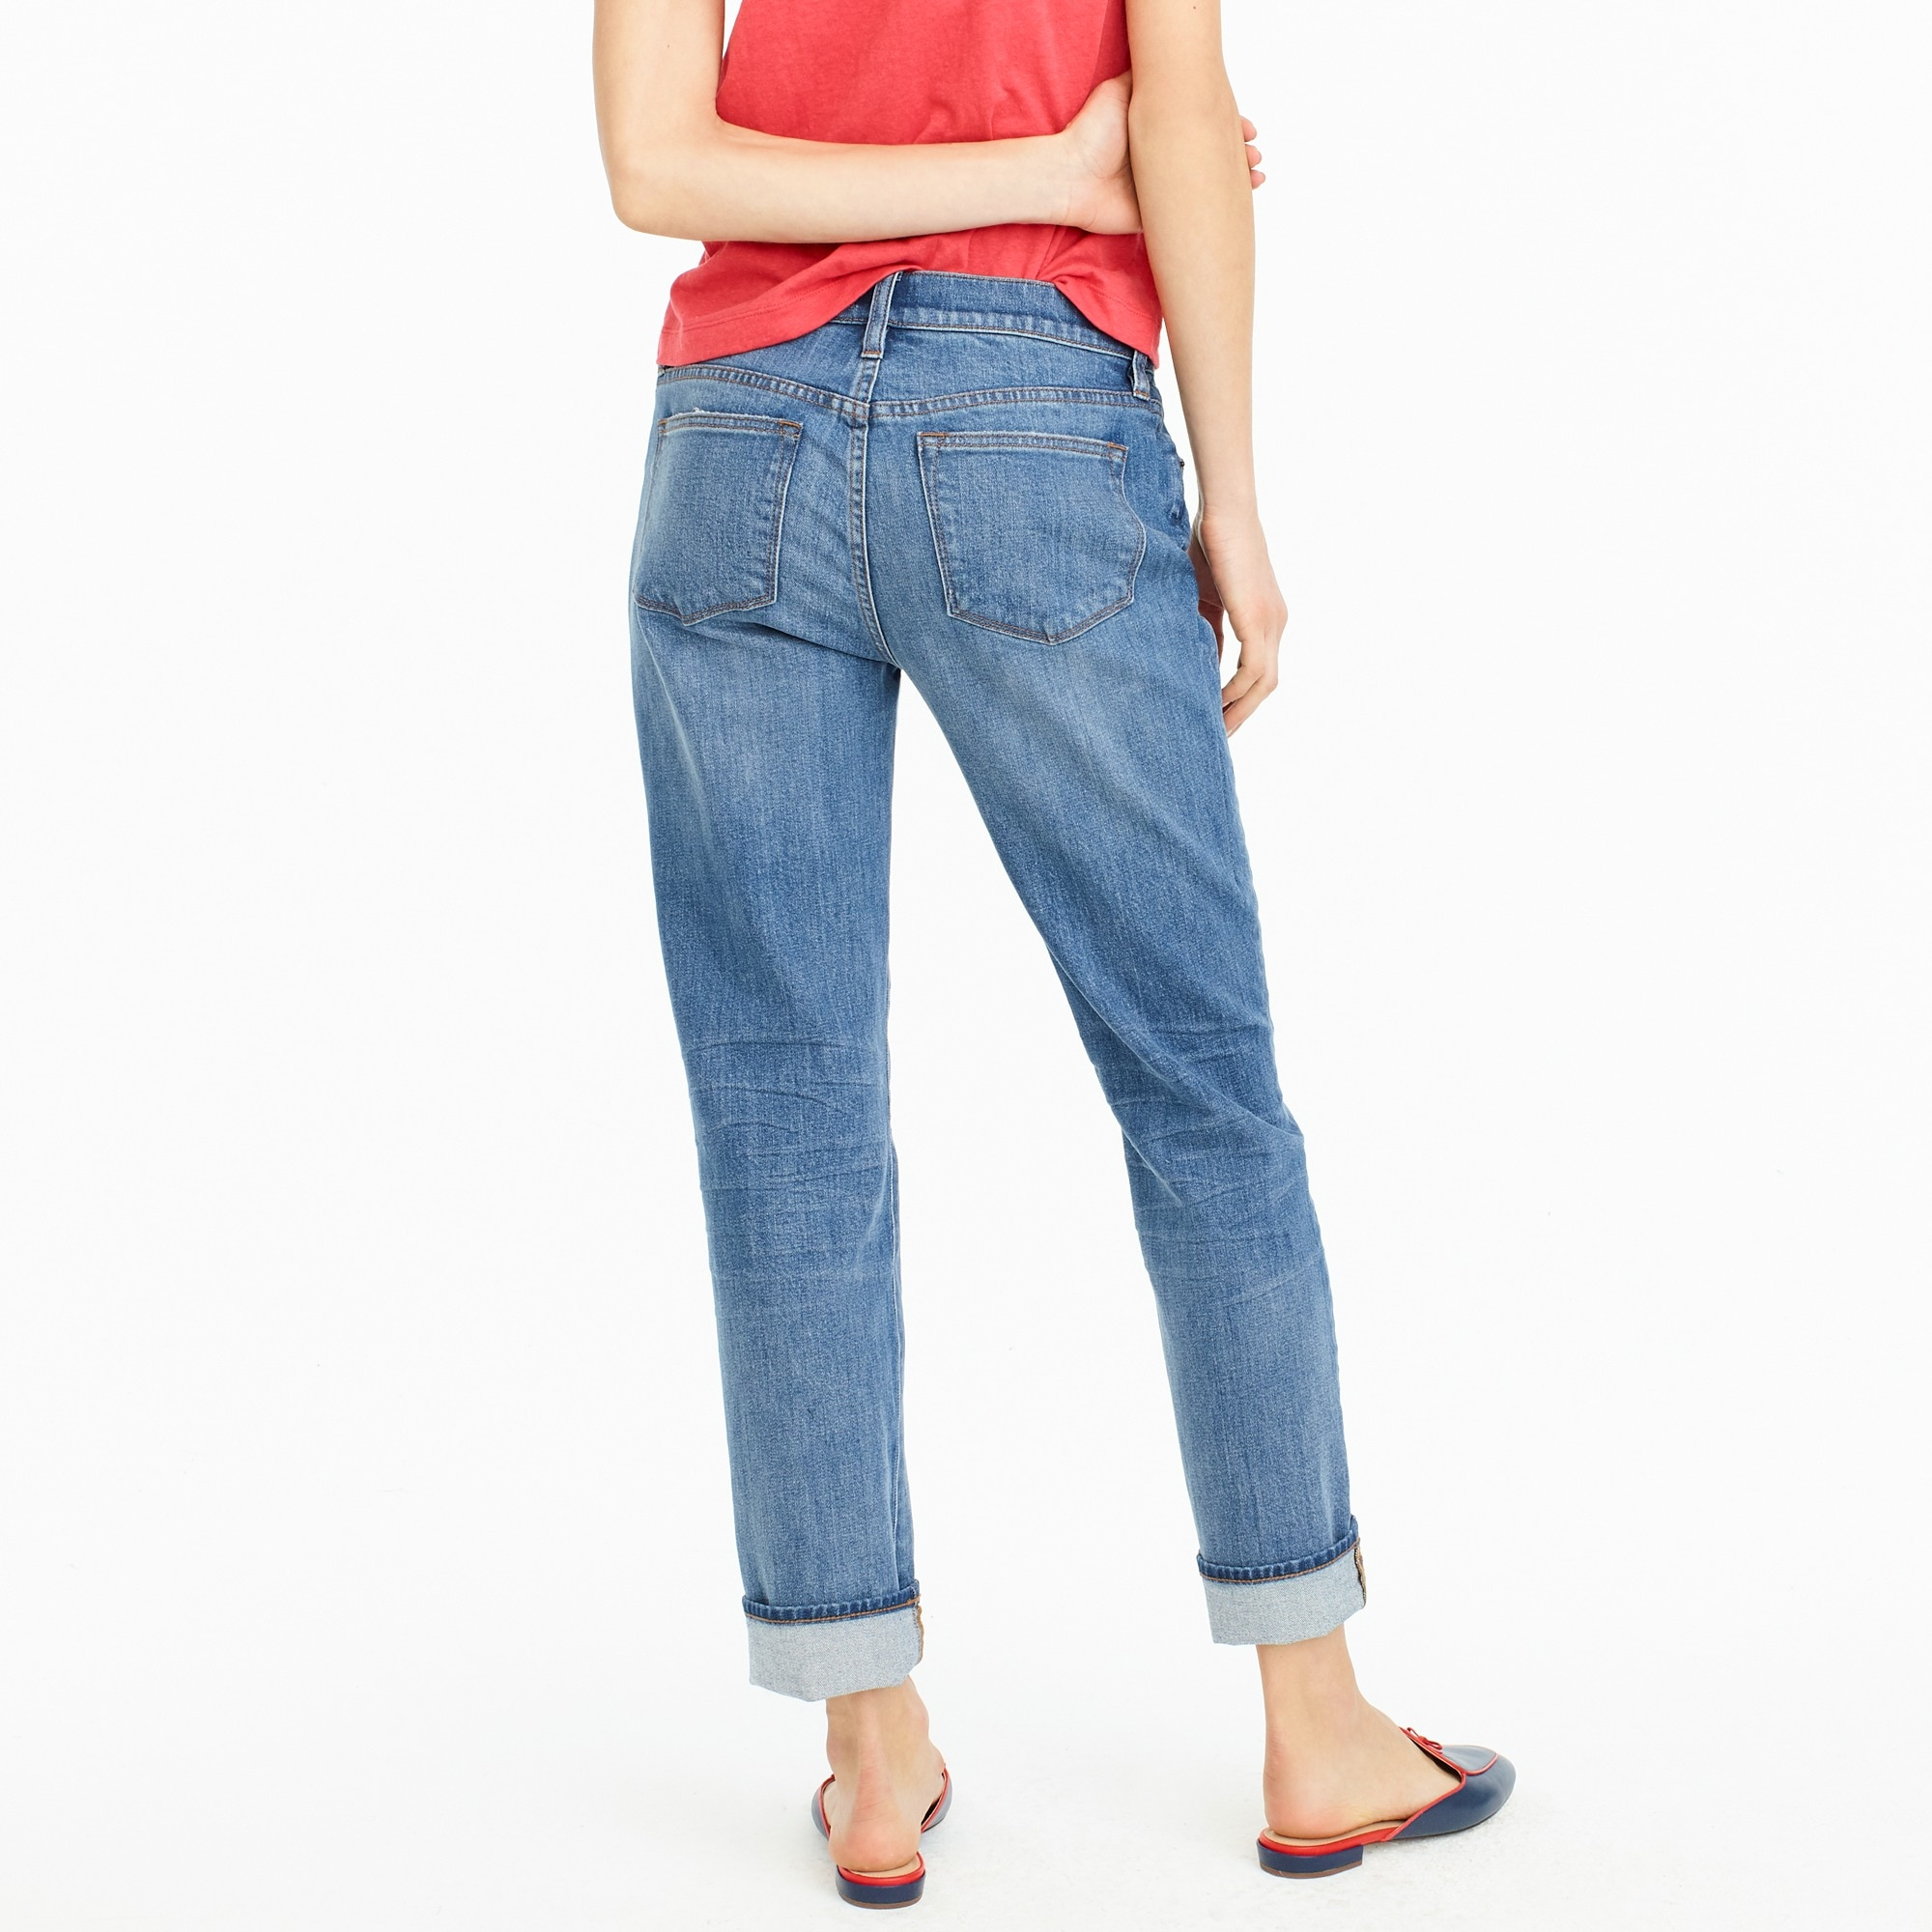 Image 3 for Petite slim boyfriend jean in Creston wash